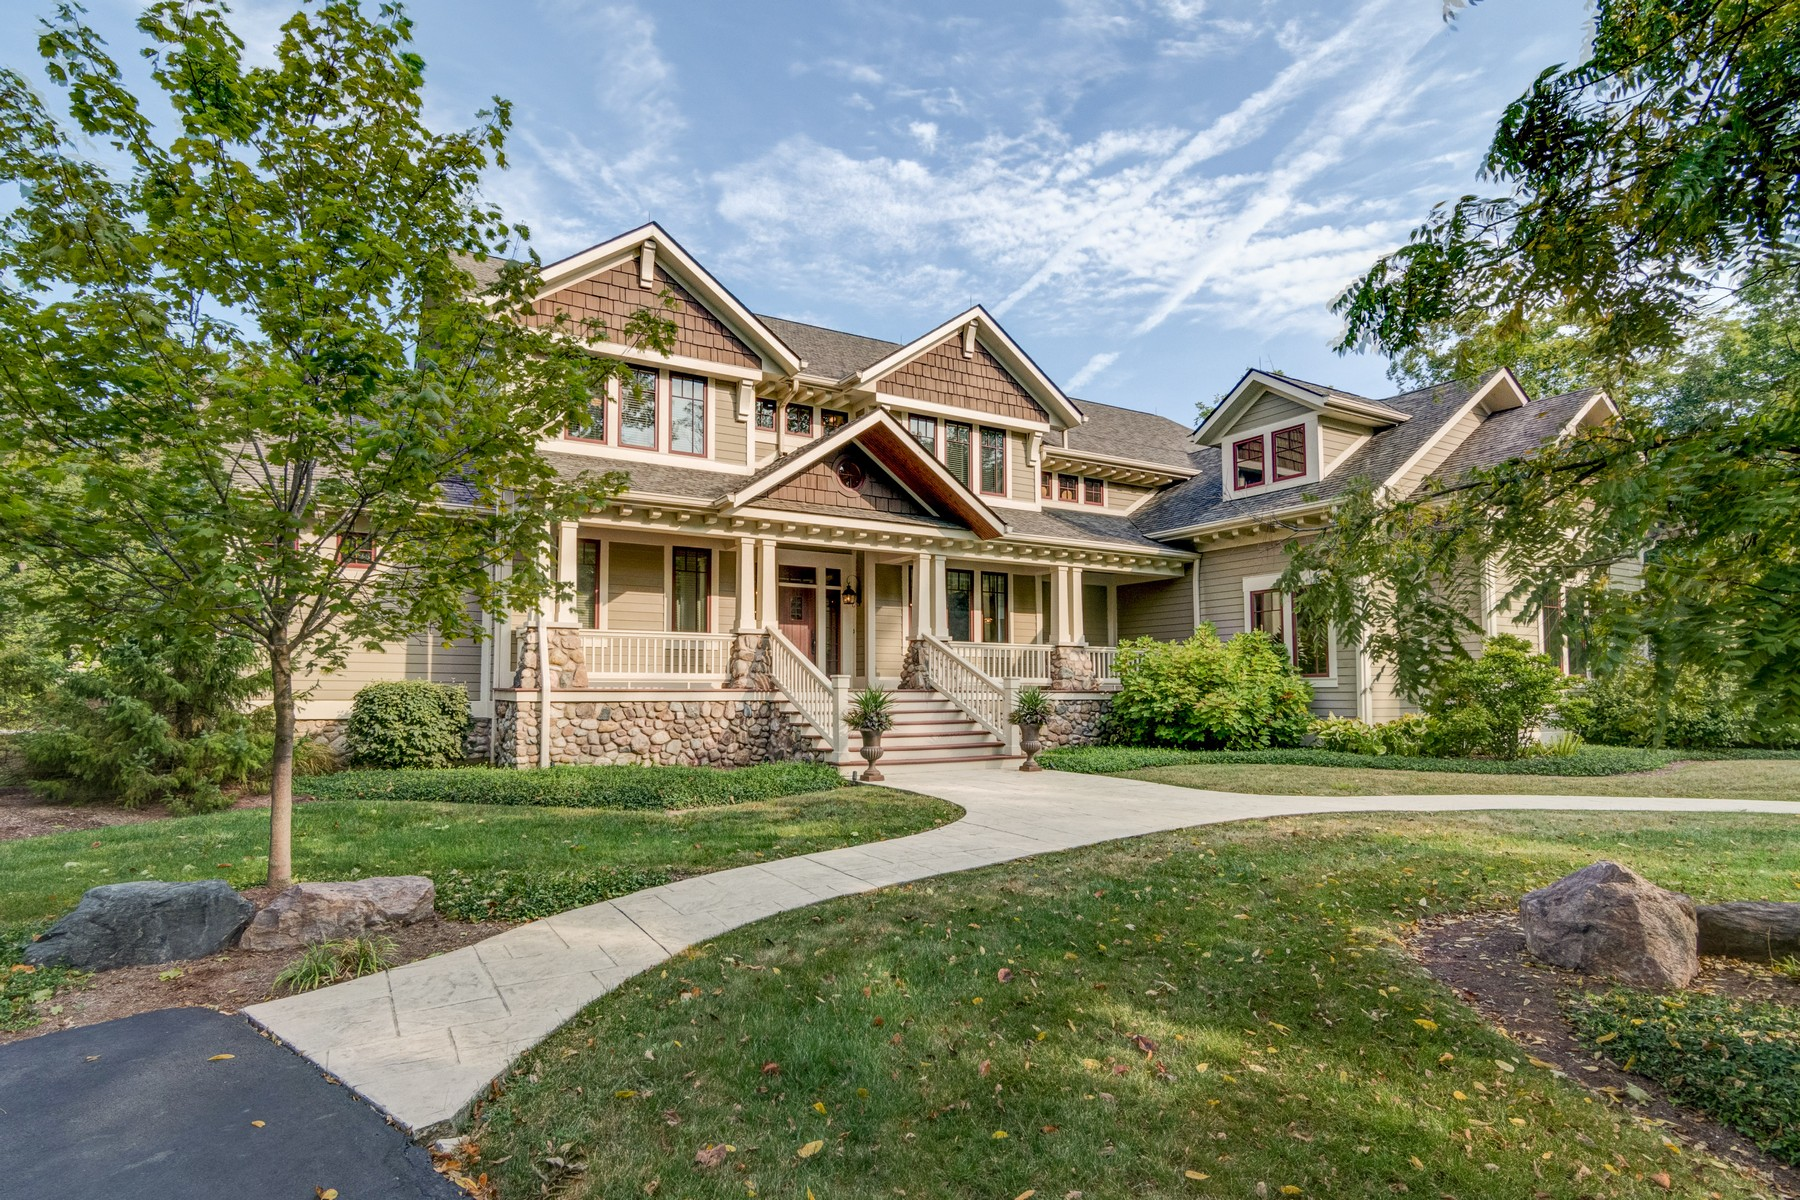 Single Family Home for Sale at Stunning Estate 2020 W. 136th Street, Carmel, Indiana, 46032 United States